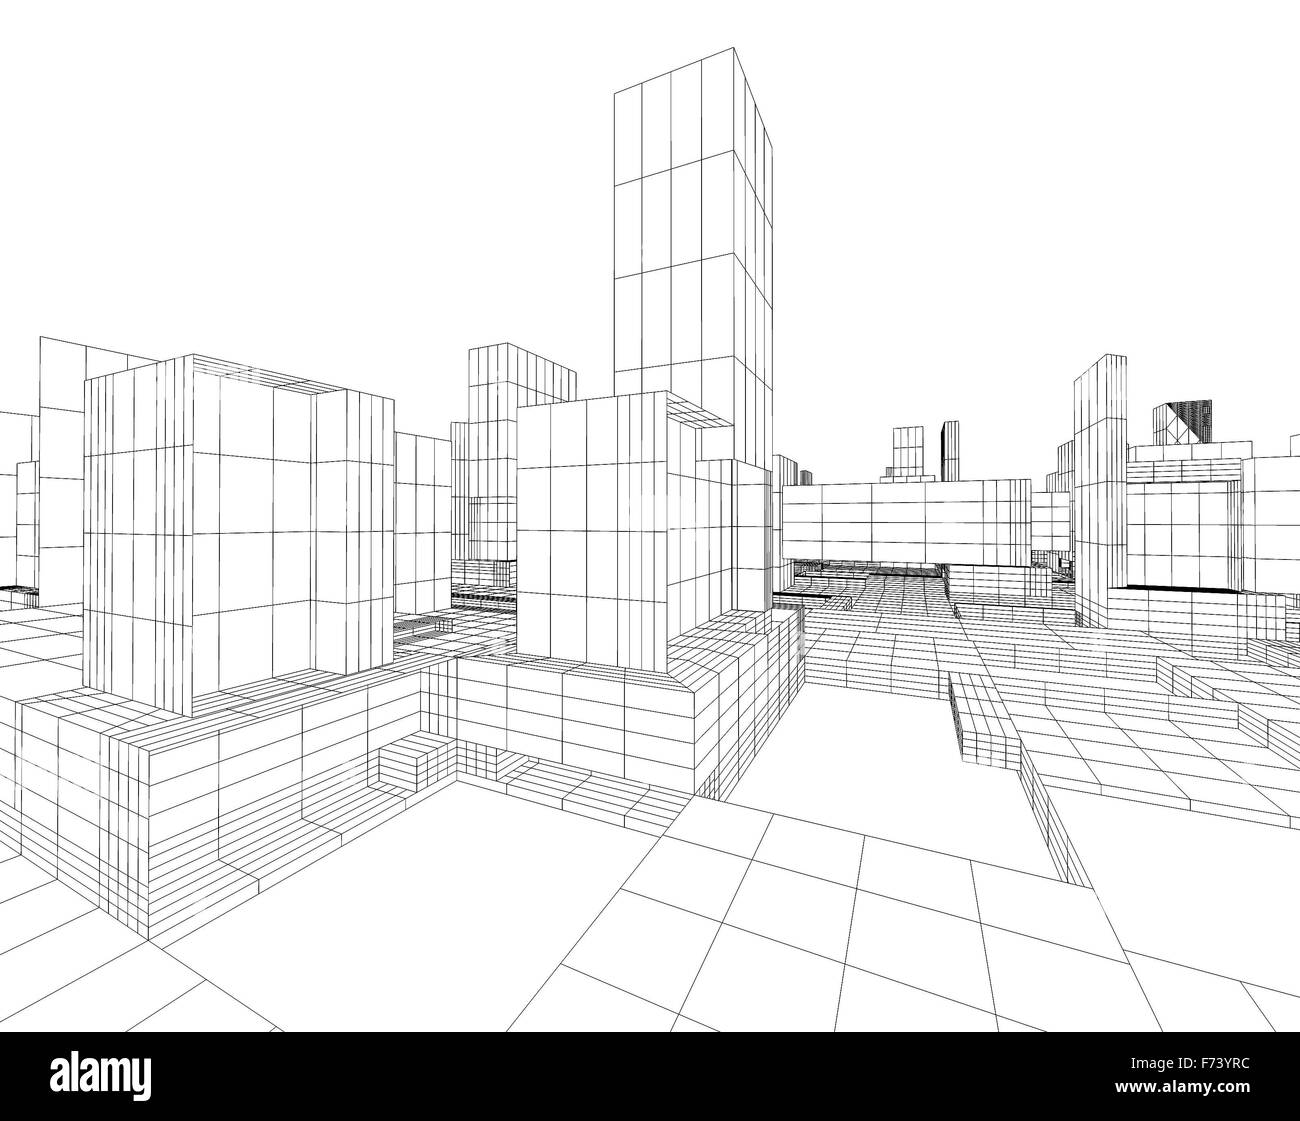 3d image of city blueprint with skyscraper and street stock photo 3d image of city blueprint with skyscraper and street malvernweather Images